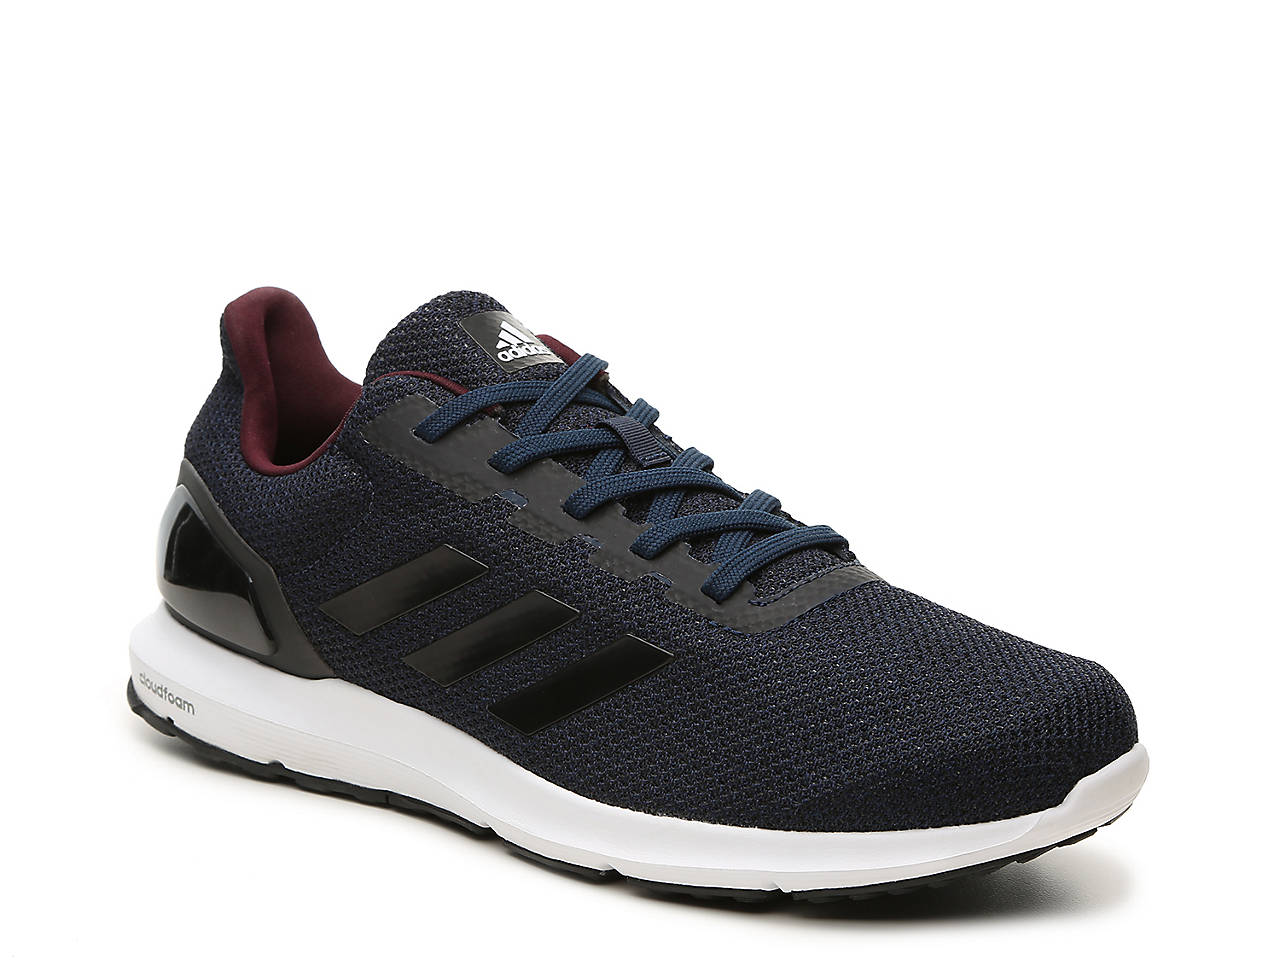 adidas ortholite cloudfoam running